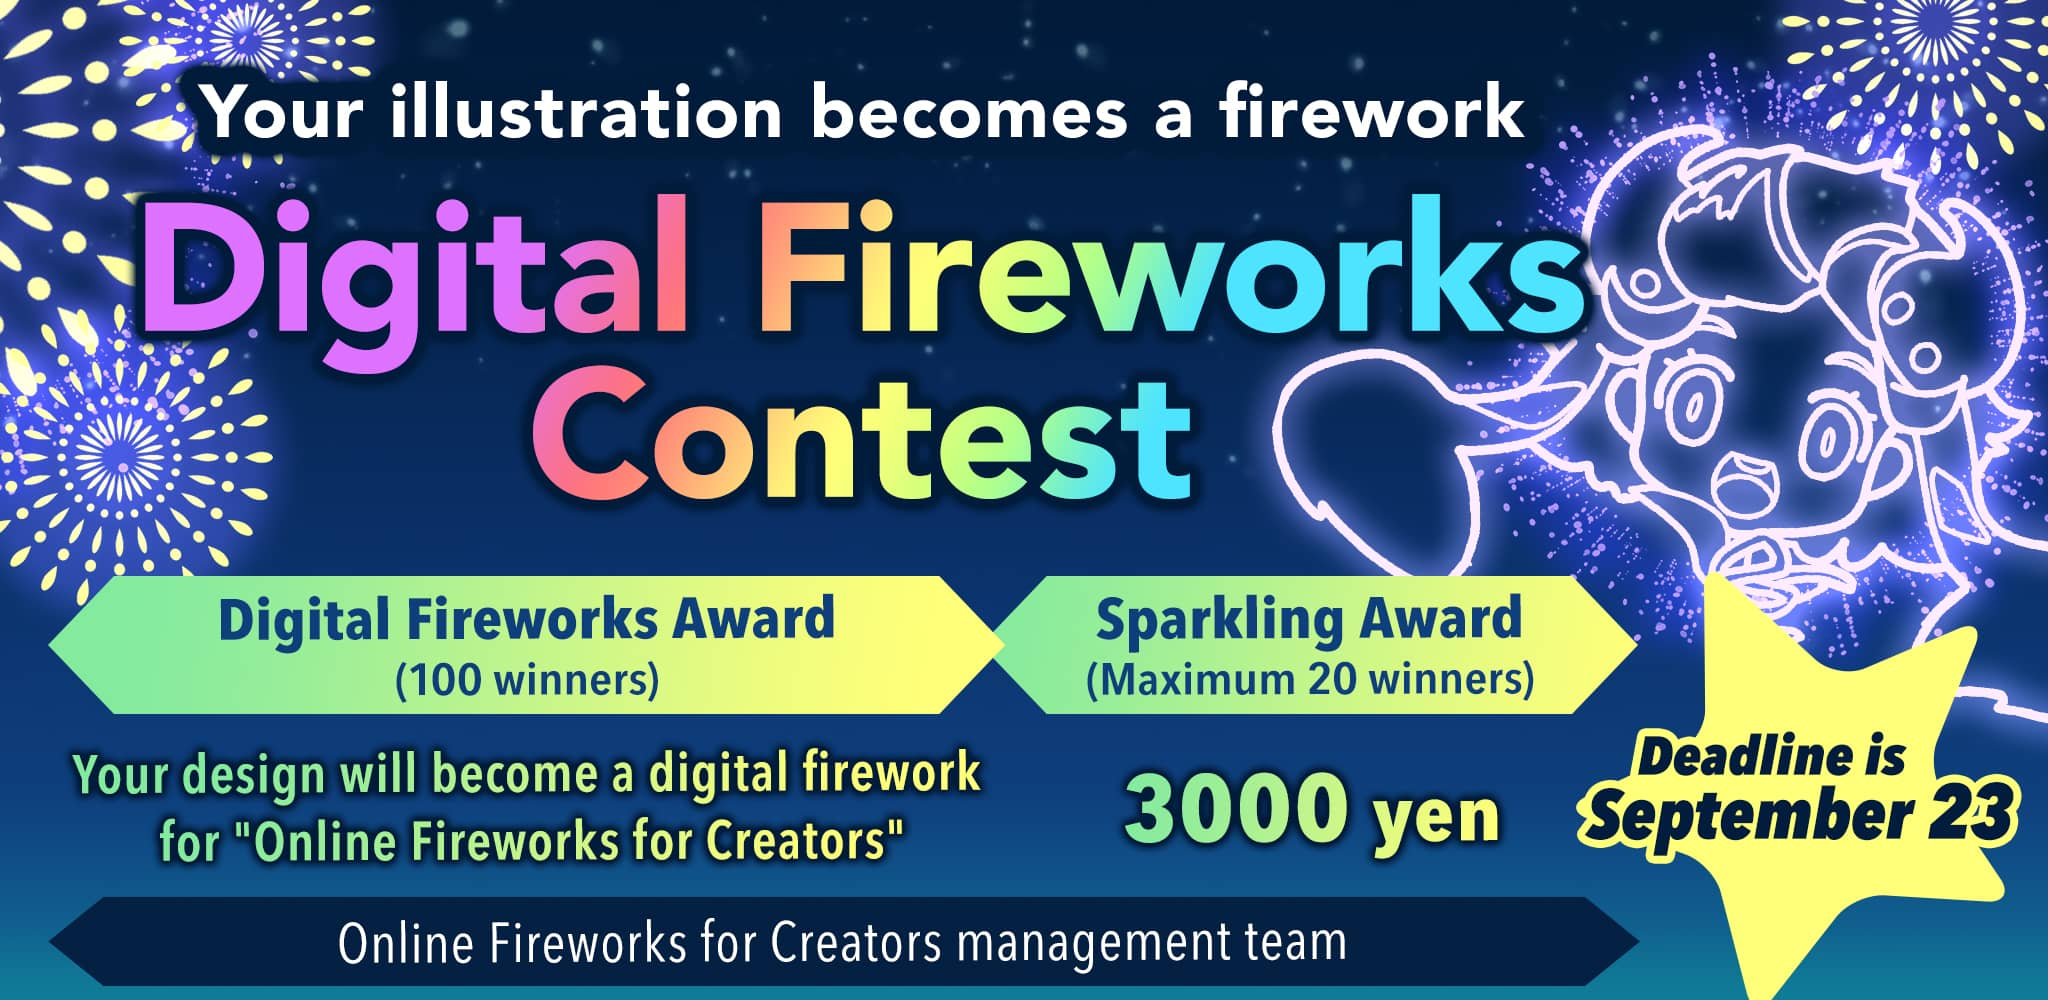 Digital Fireworks Contest| Contest - ART street by MediBang